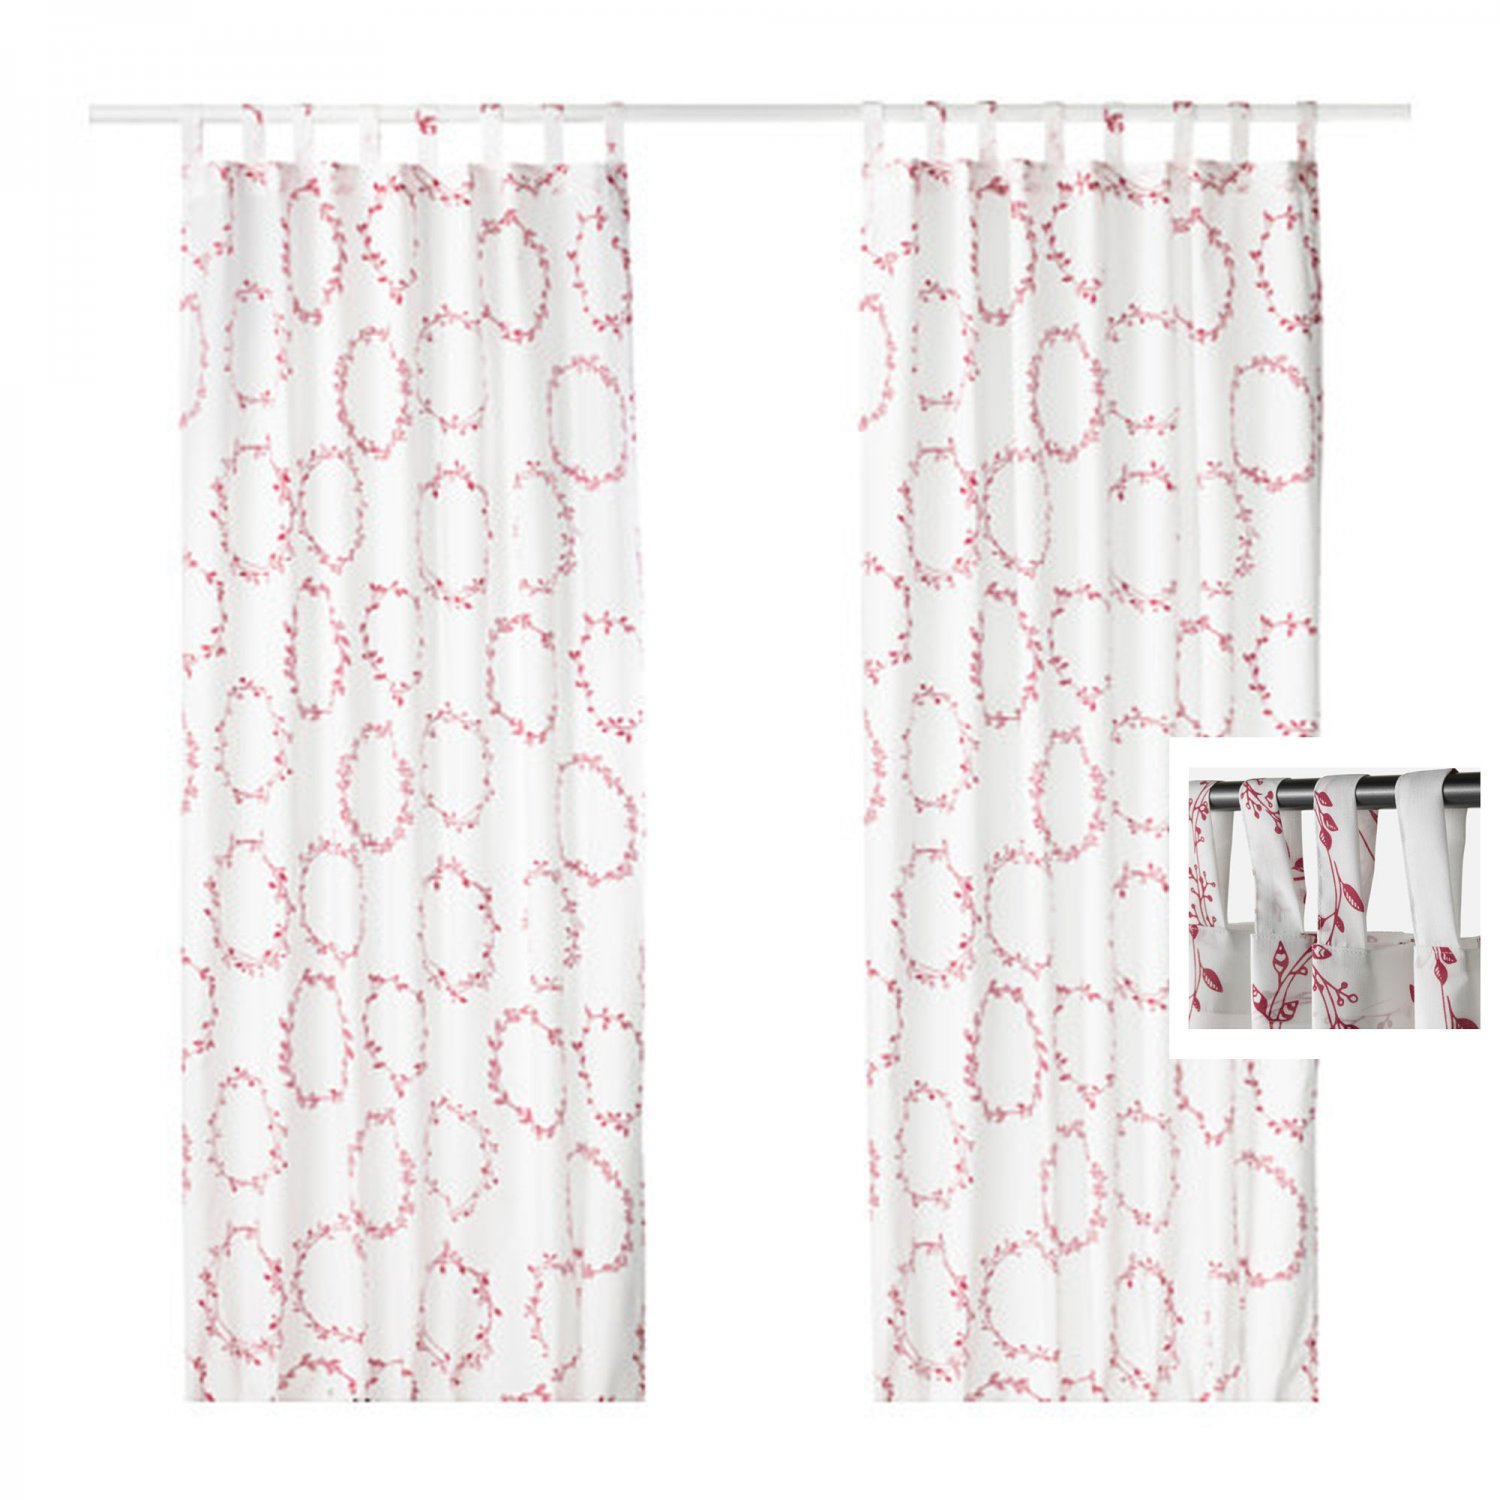 Ikea Vinter 2016 Teppich Ikea Vinter 2016 Drapes Curtains Red White Xmas Garland